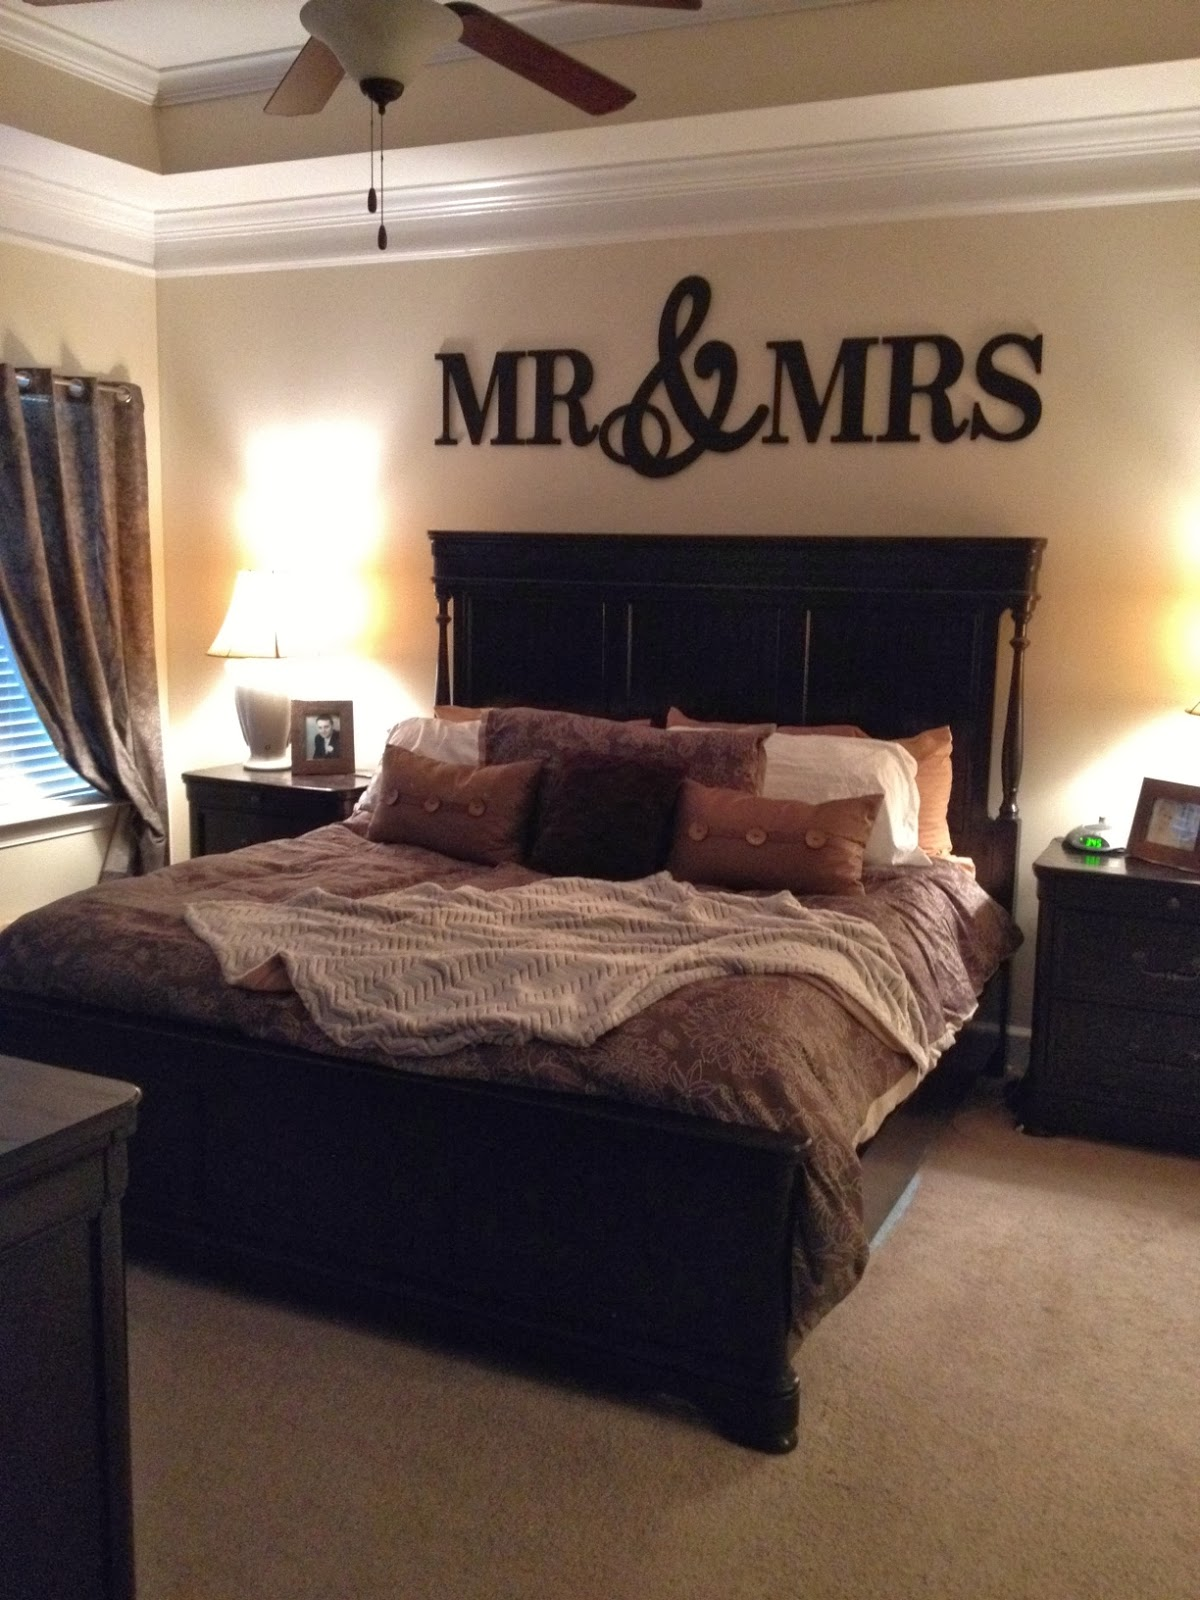 Simply the simmons mr mrs Master bedroom decor idea